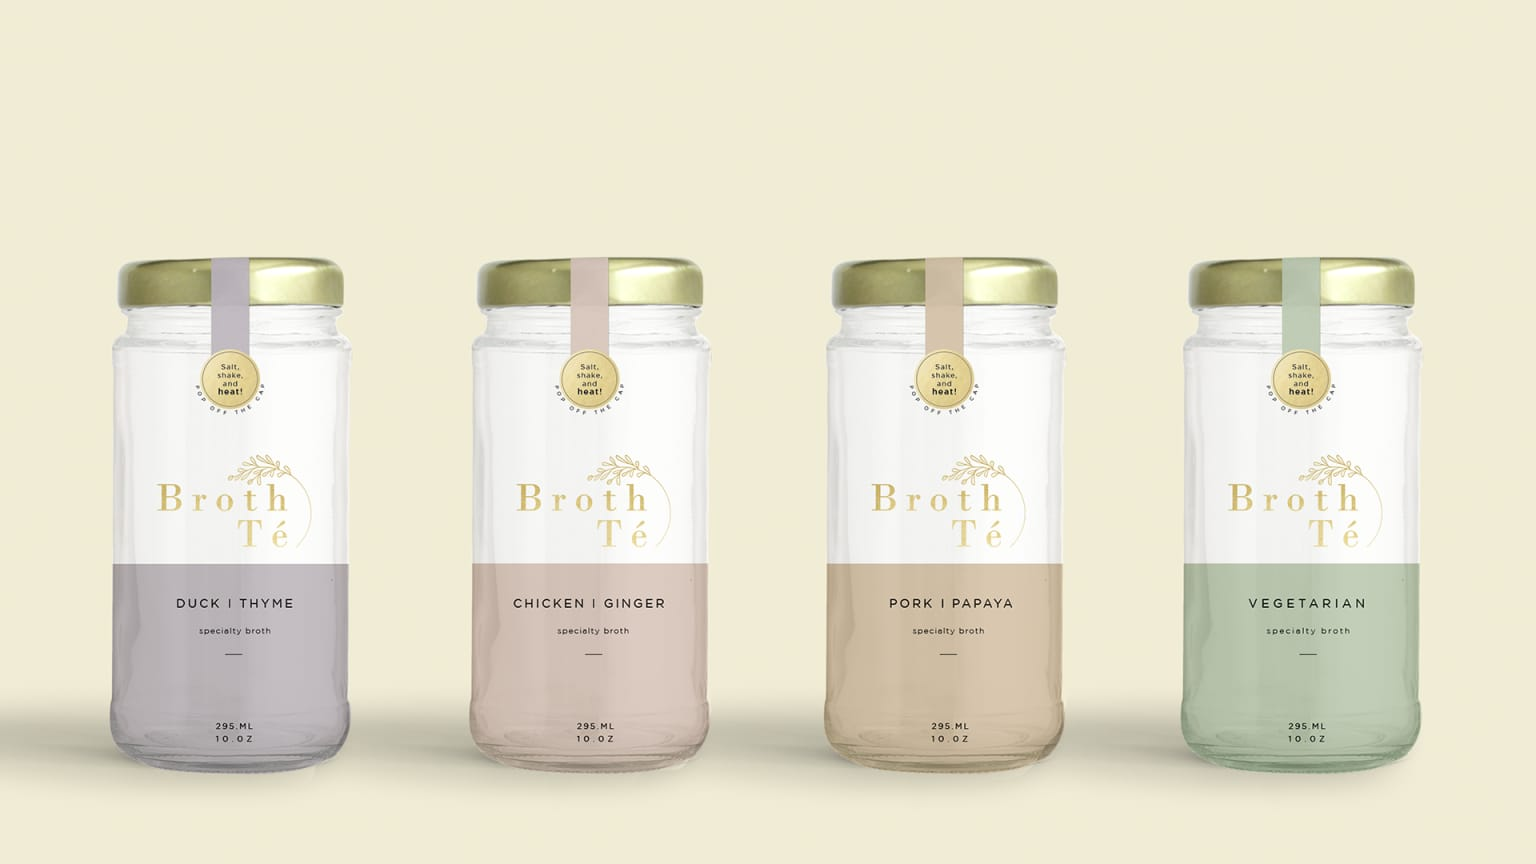 Packaging Design for Broth Té